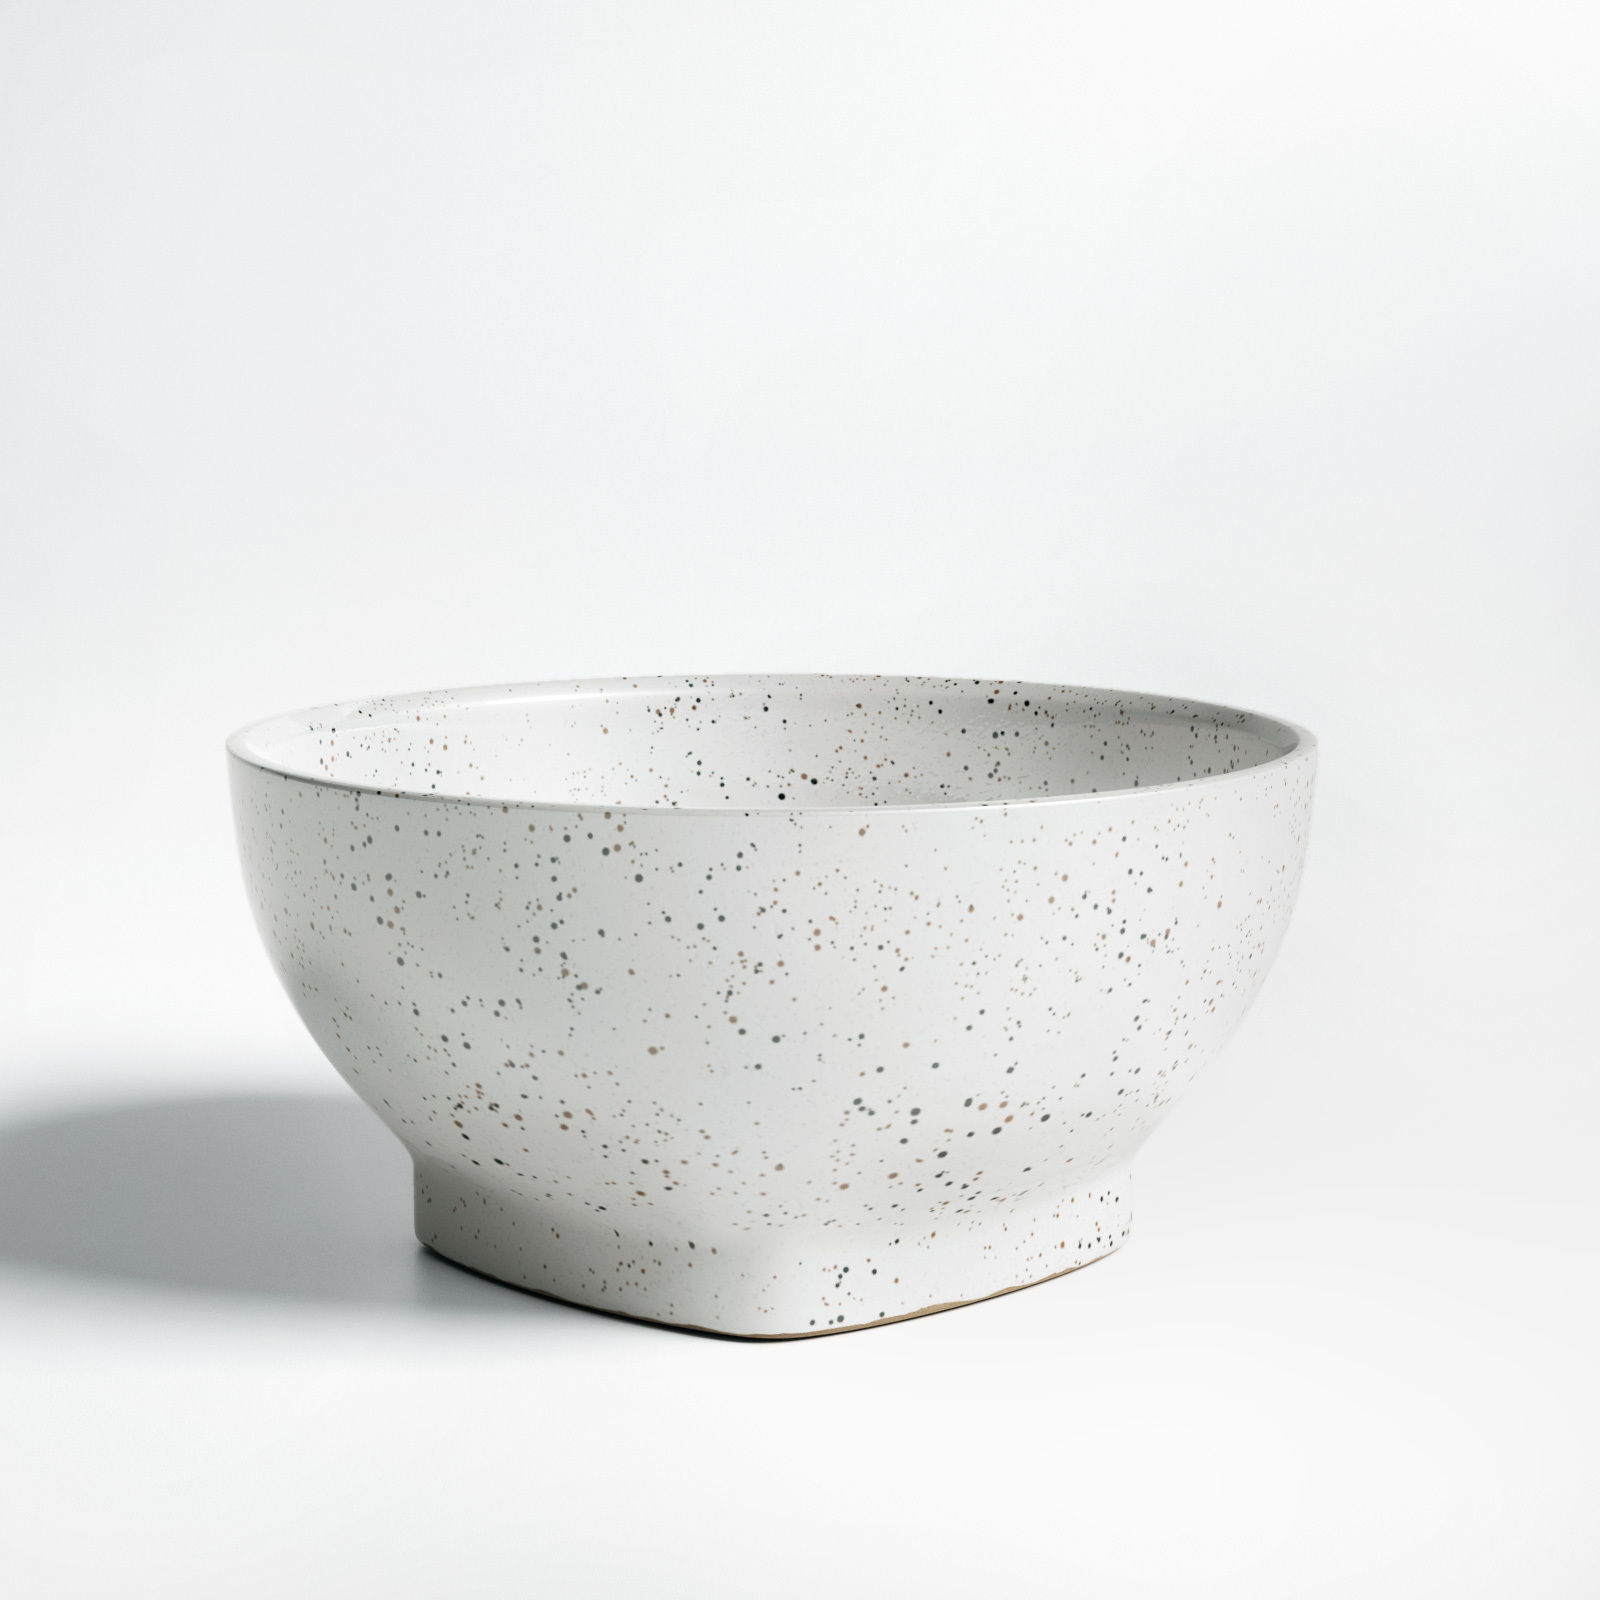 Forma Serving Bowl 17cm by Bolia